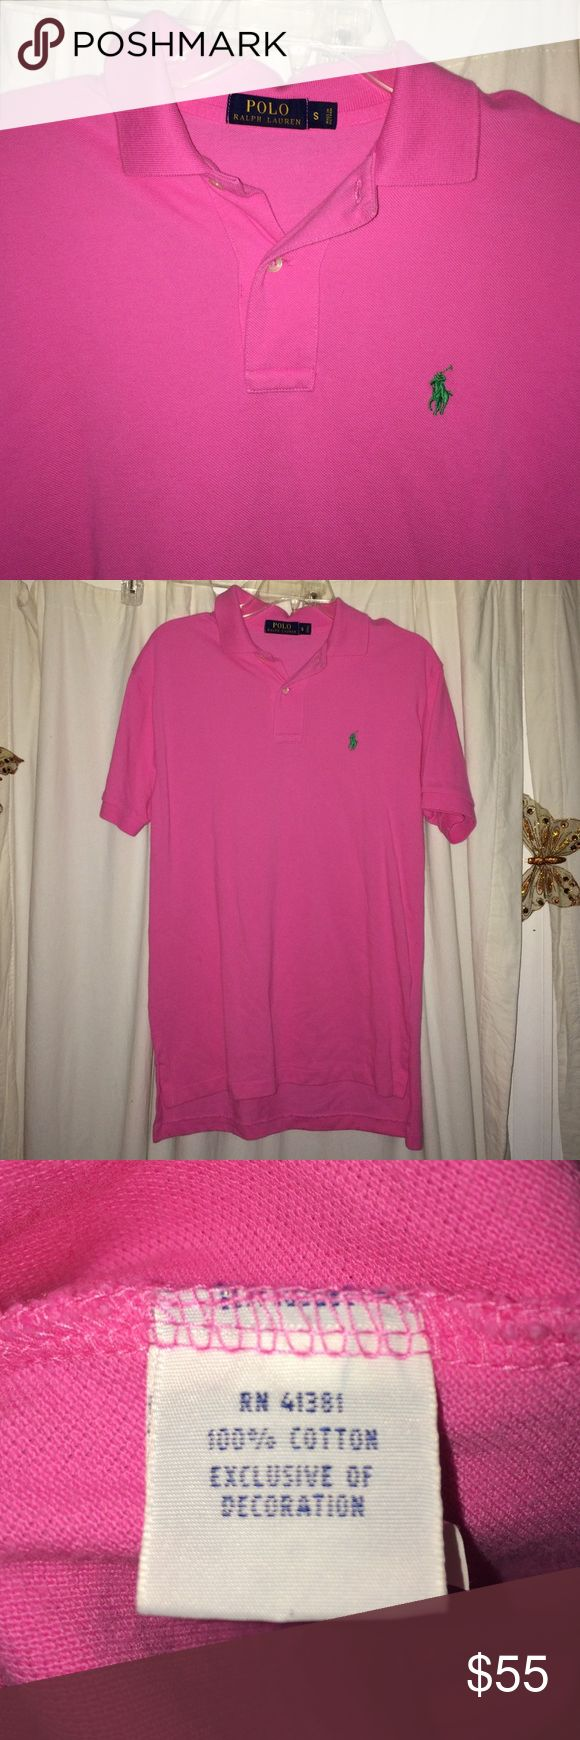 Like new men's hot pink polo shirt This polo has been worn and washed just once. Like new condition. By Polo Ralph Lauren. Offers considered. Polo by Ralph Lauren Shirts Polos